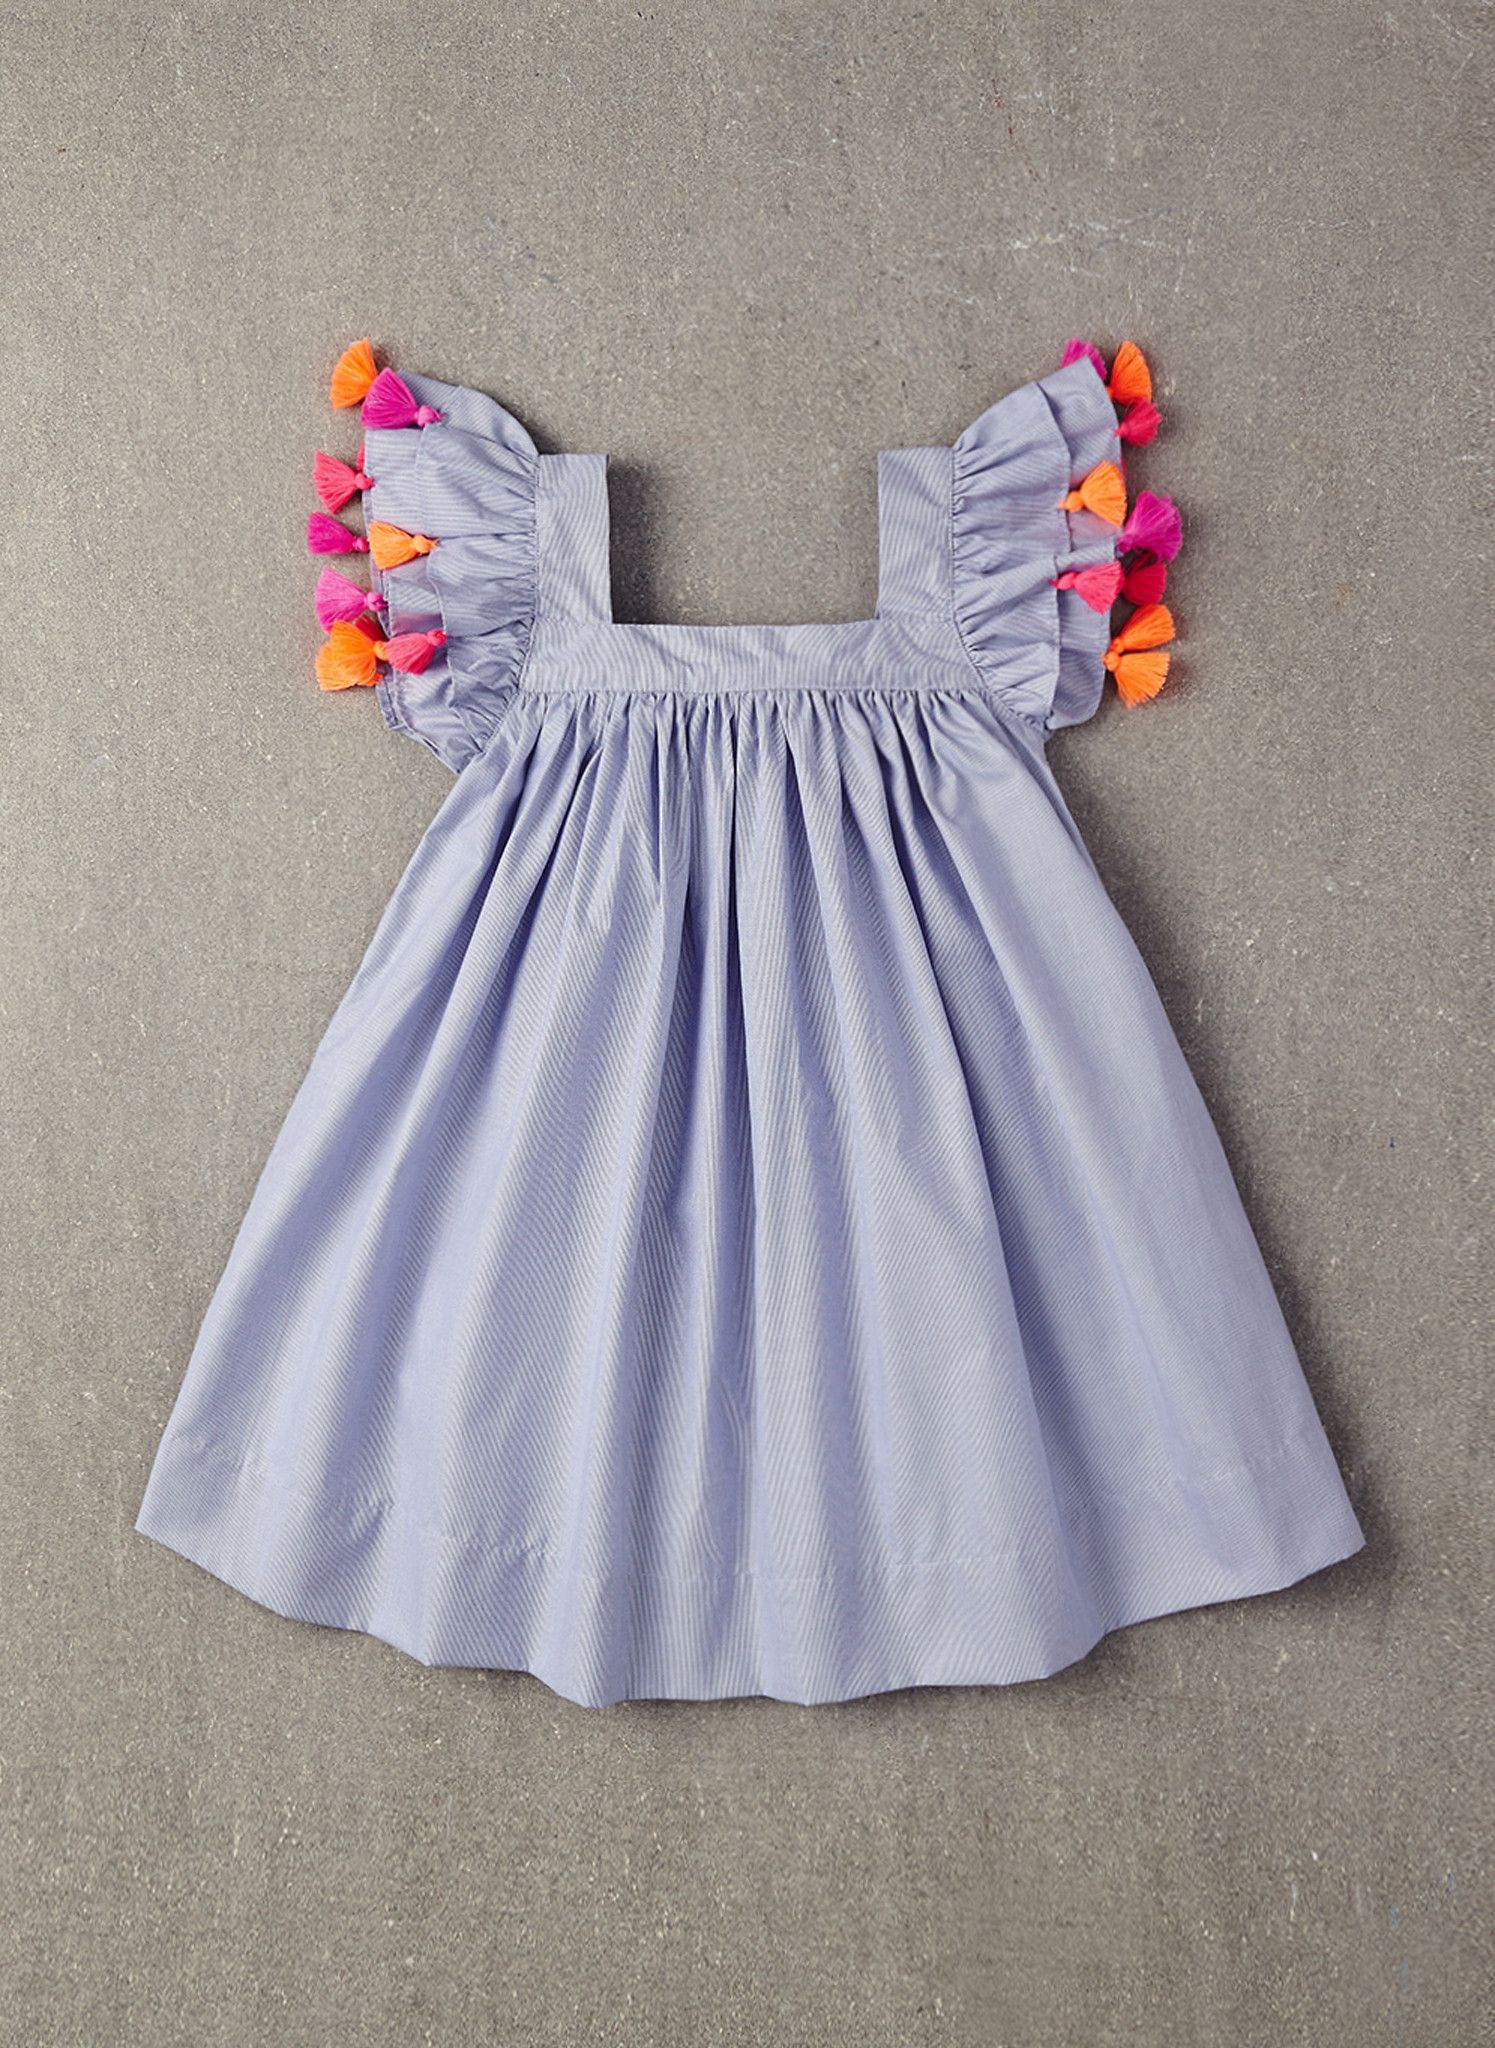 Nellystella Chloe Dress in Blue Pin Stripe - PRE-ORDER   Baby   Kids ... 7c08e66eba